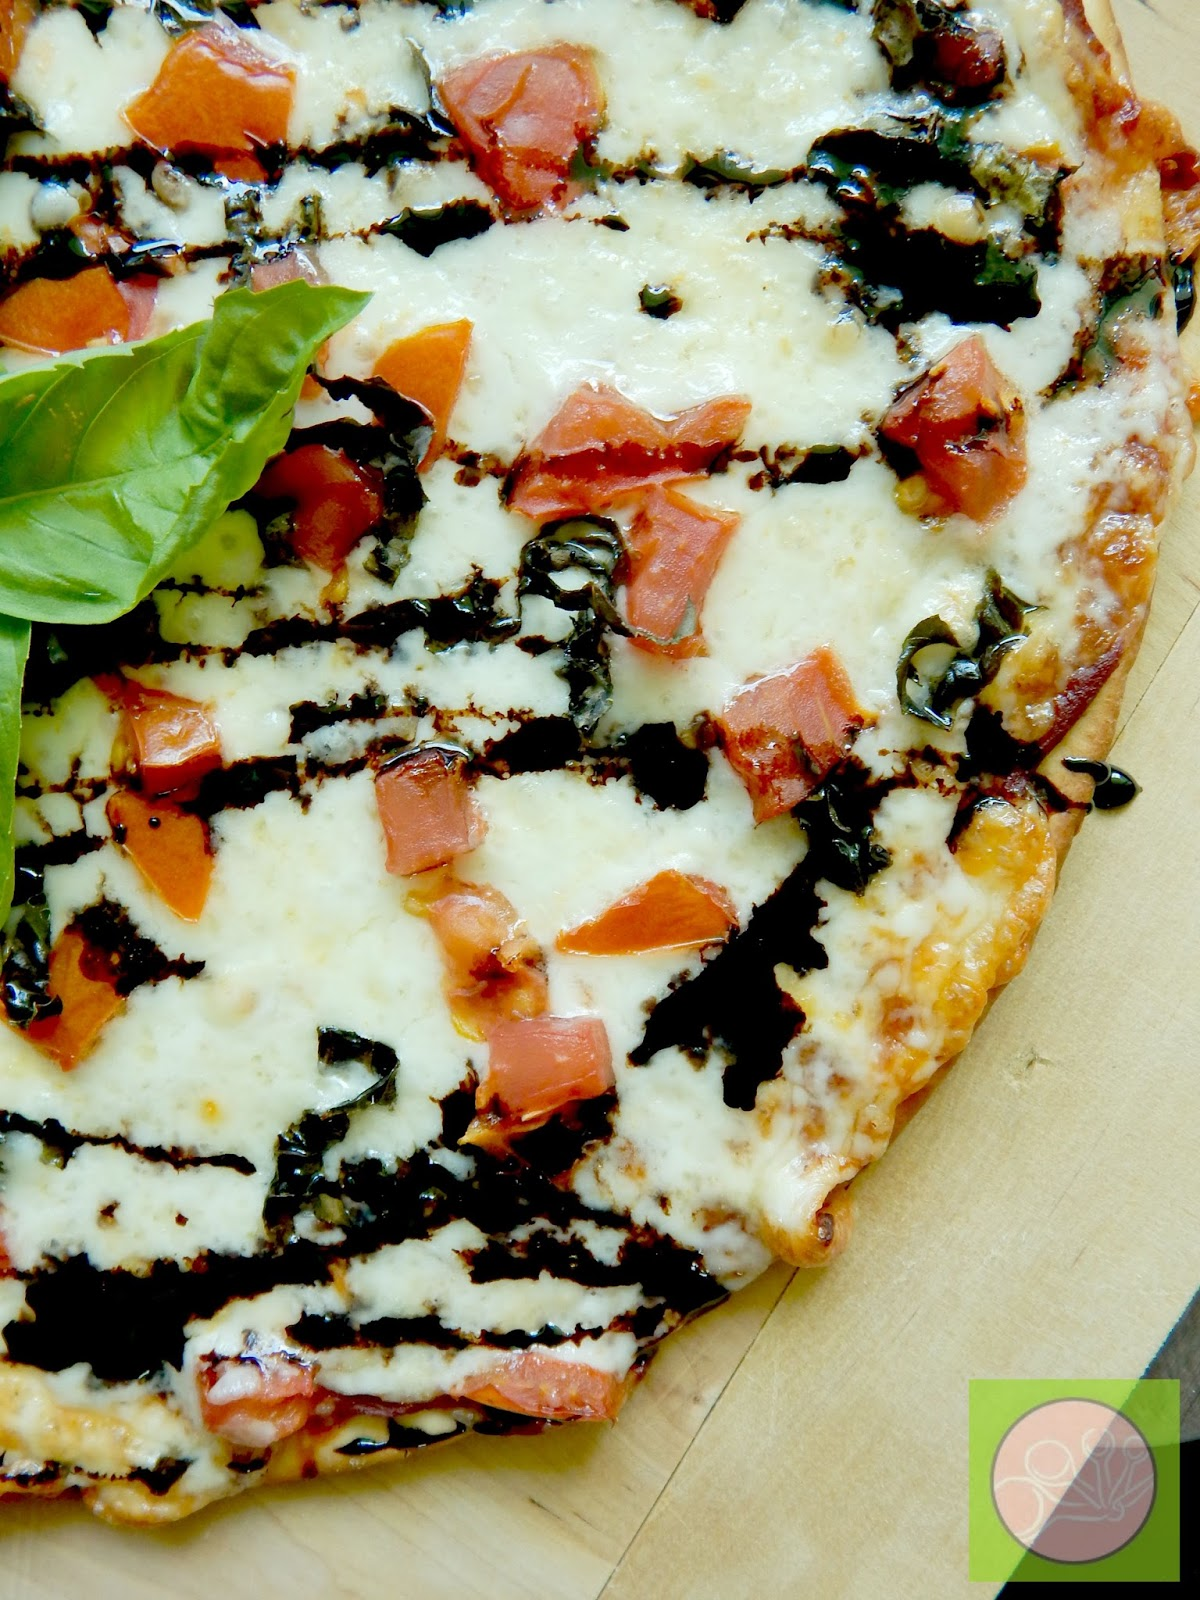 Ally S Sweet Savory Eats Margarita Pizza With Balsamic Drizzle